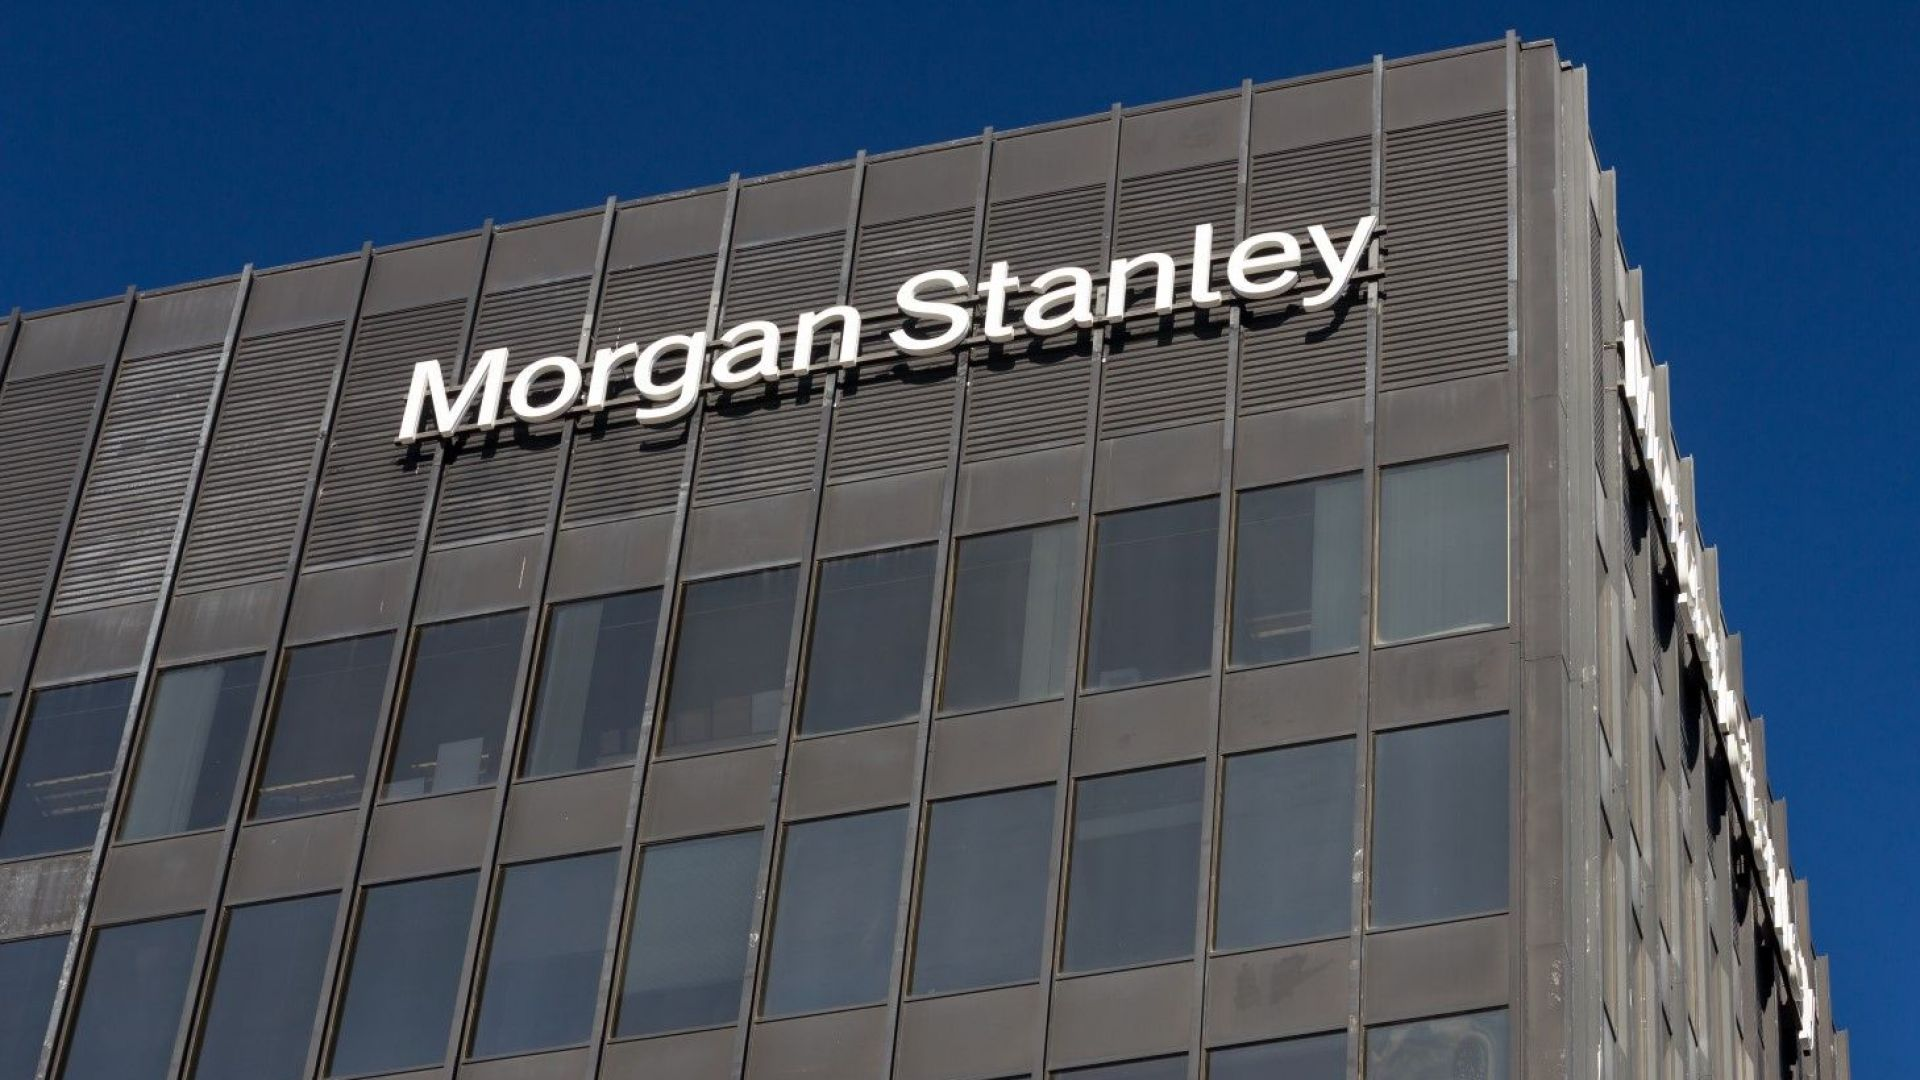 Morgan Stanley уволни Морган Стенли